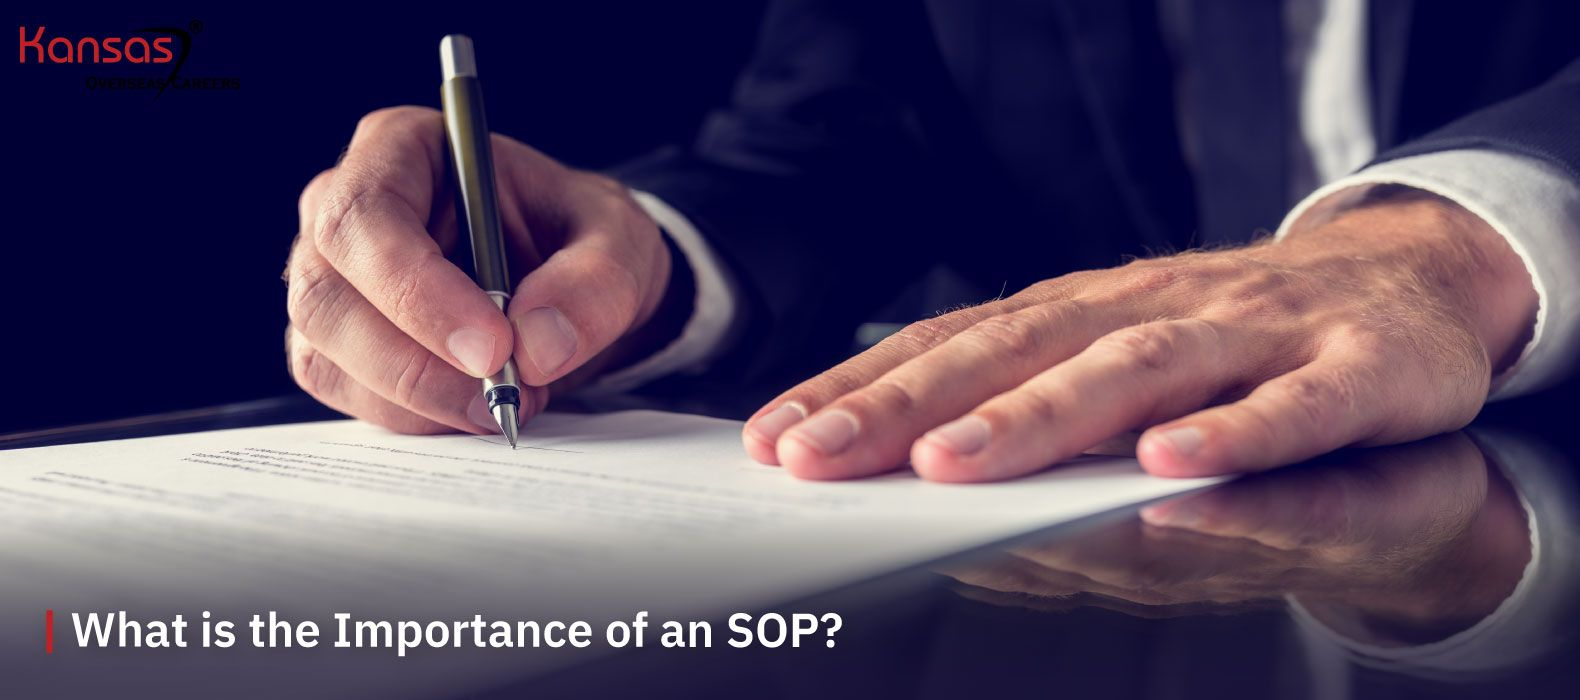 What-is-the-Importance-of-an-SOP--